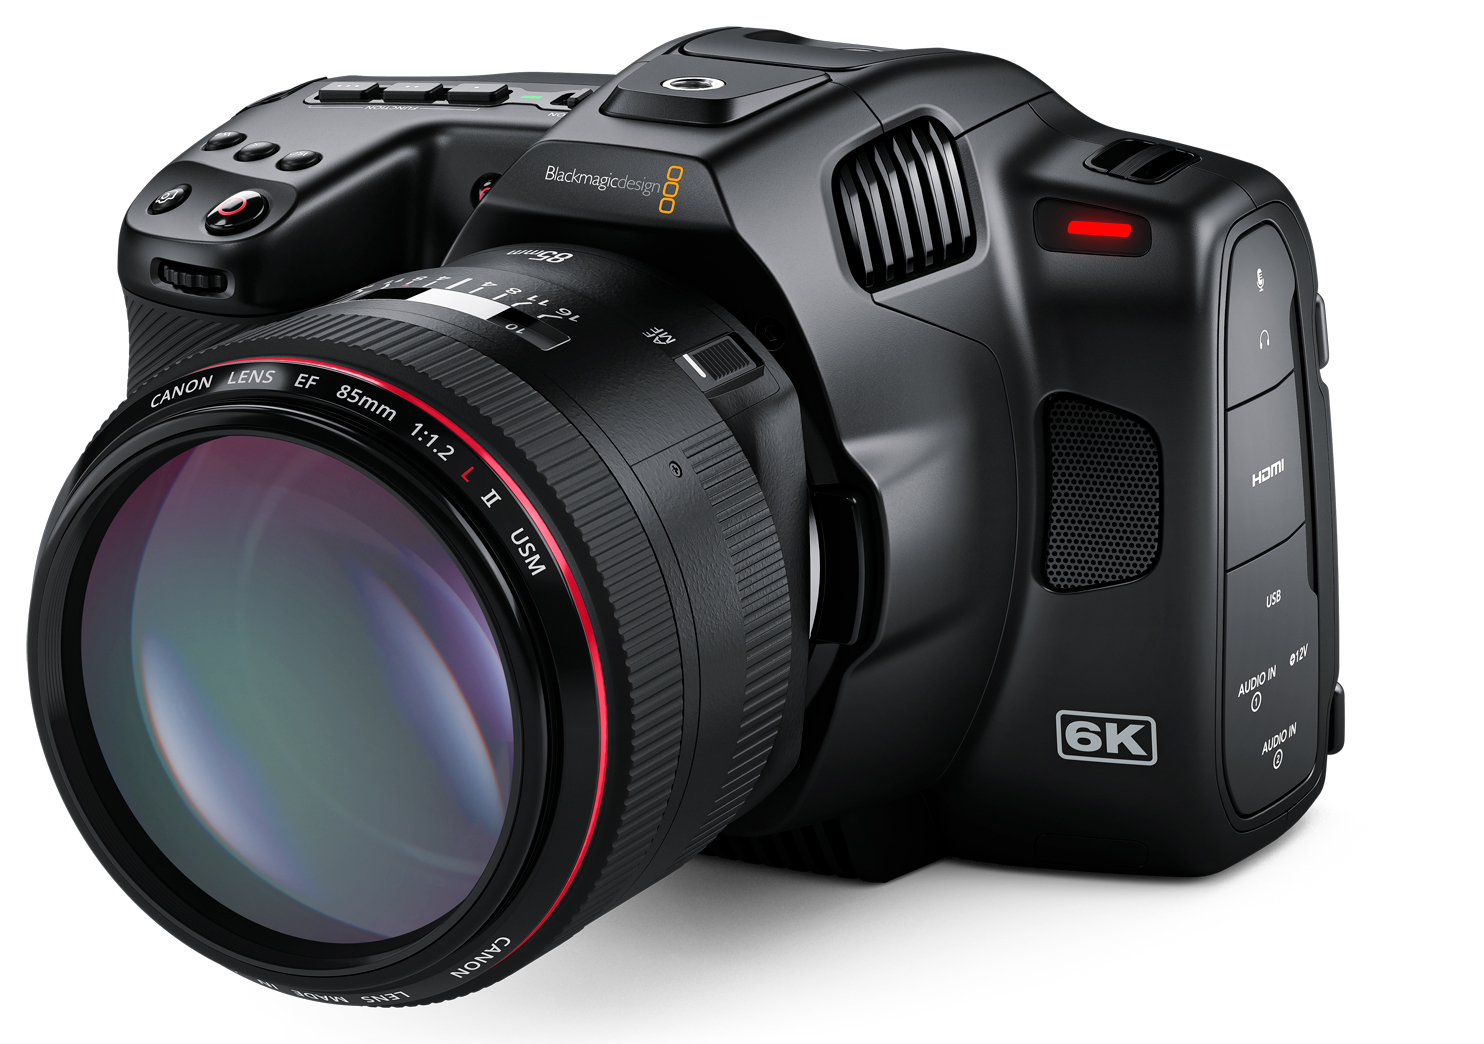 Blackmagic Pocket Cinema Camera 6K Pro - with integrated ND filter and viewfinder